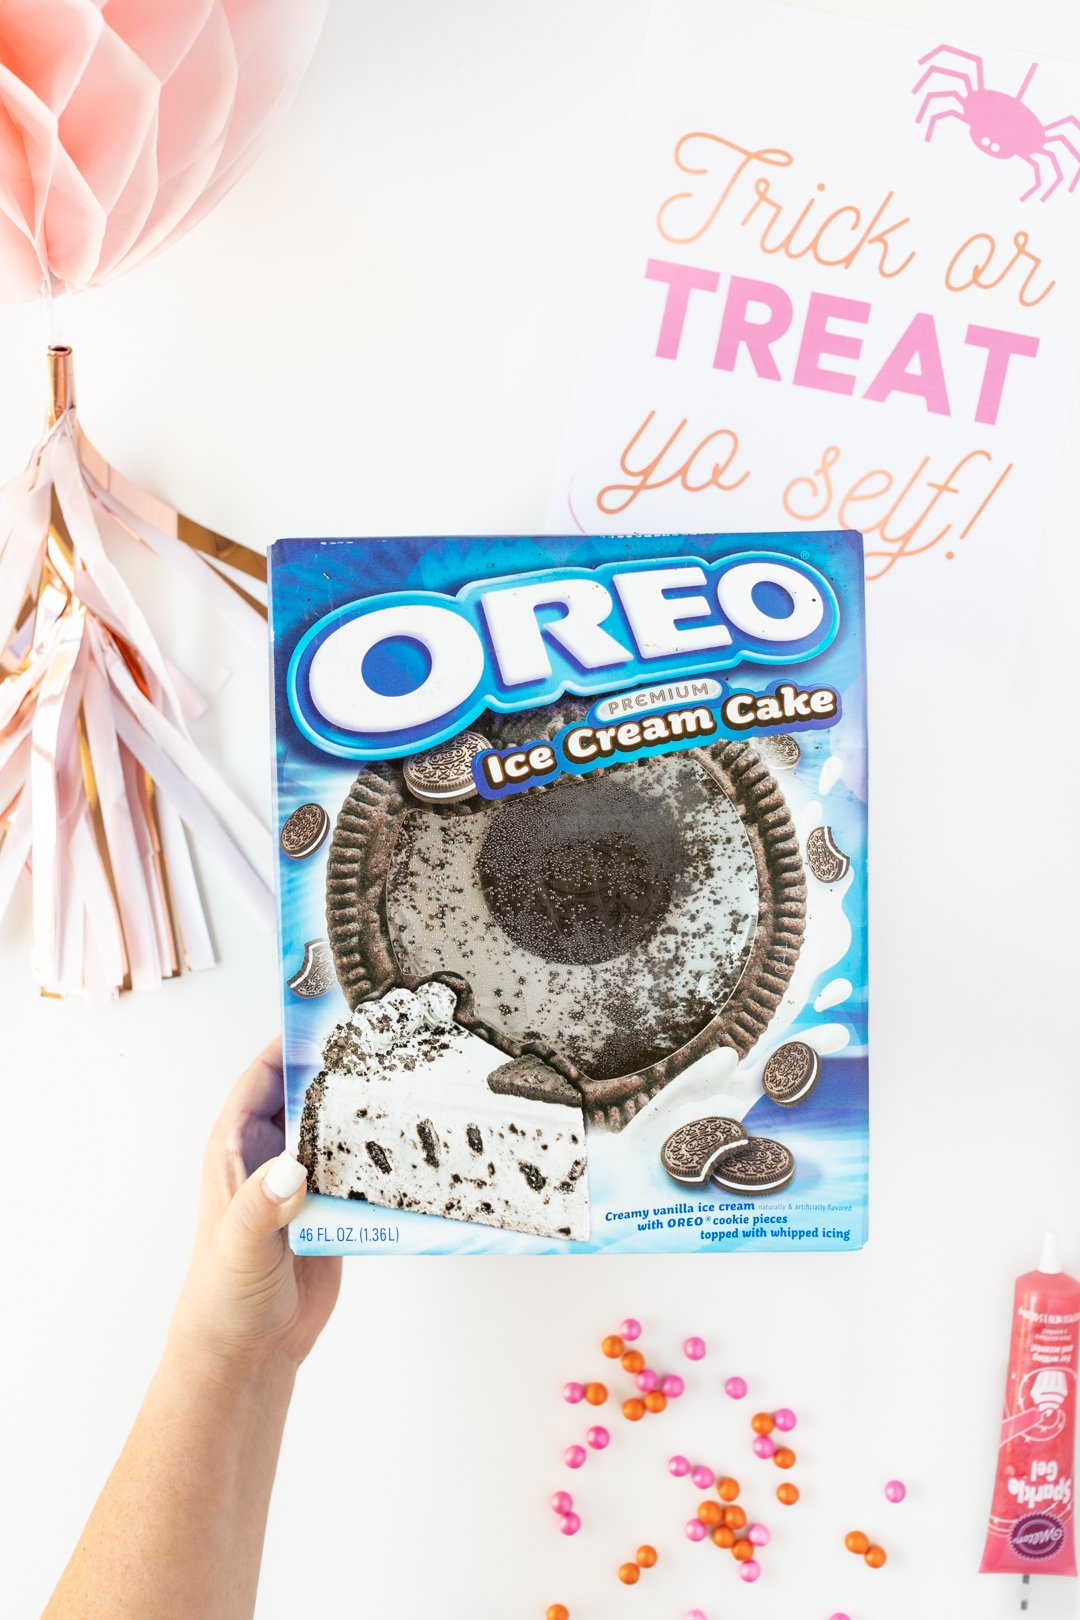 Carvel OREO Ice Cream Cake in box.